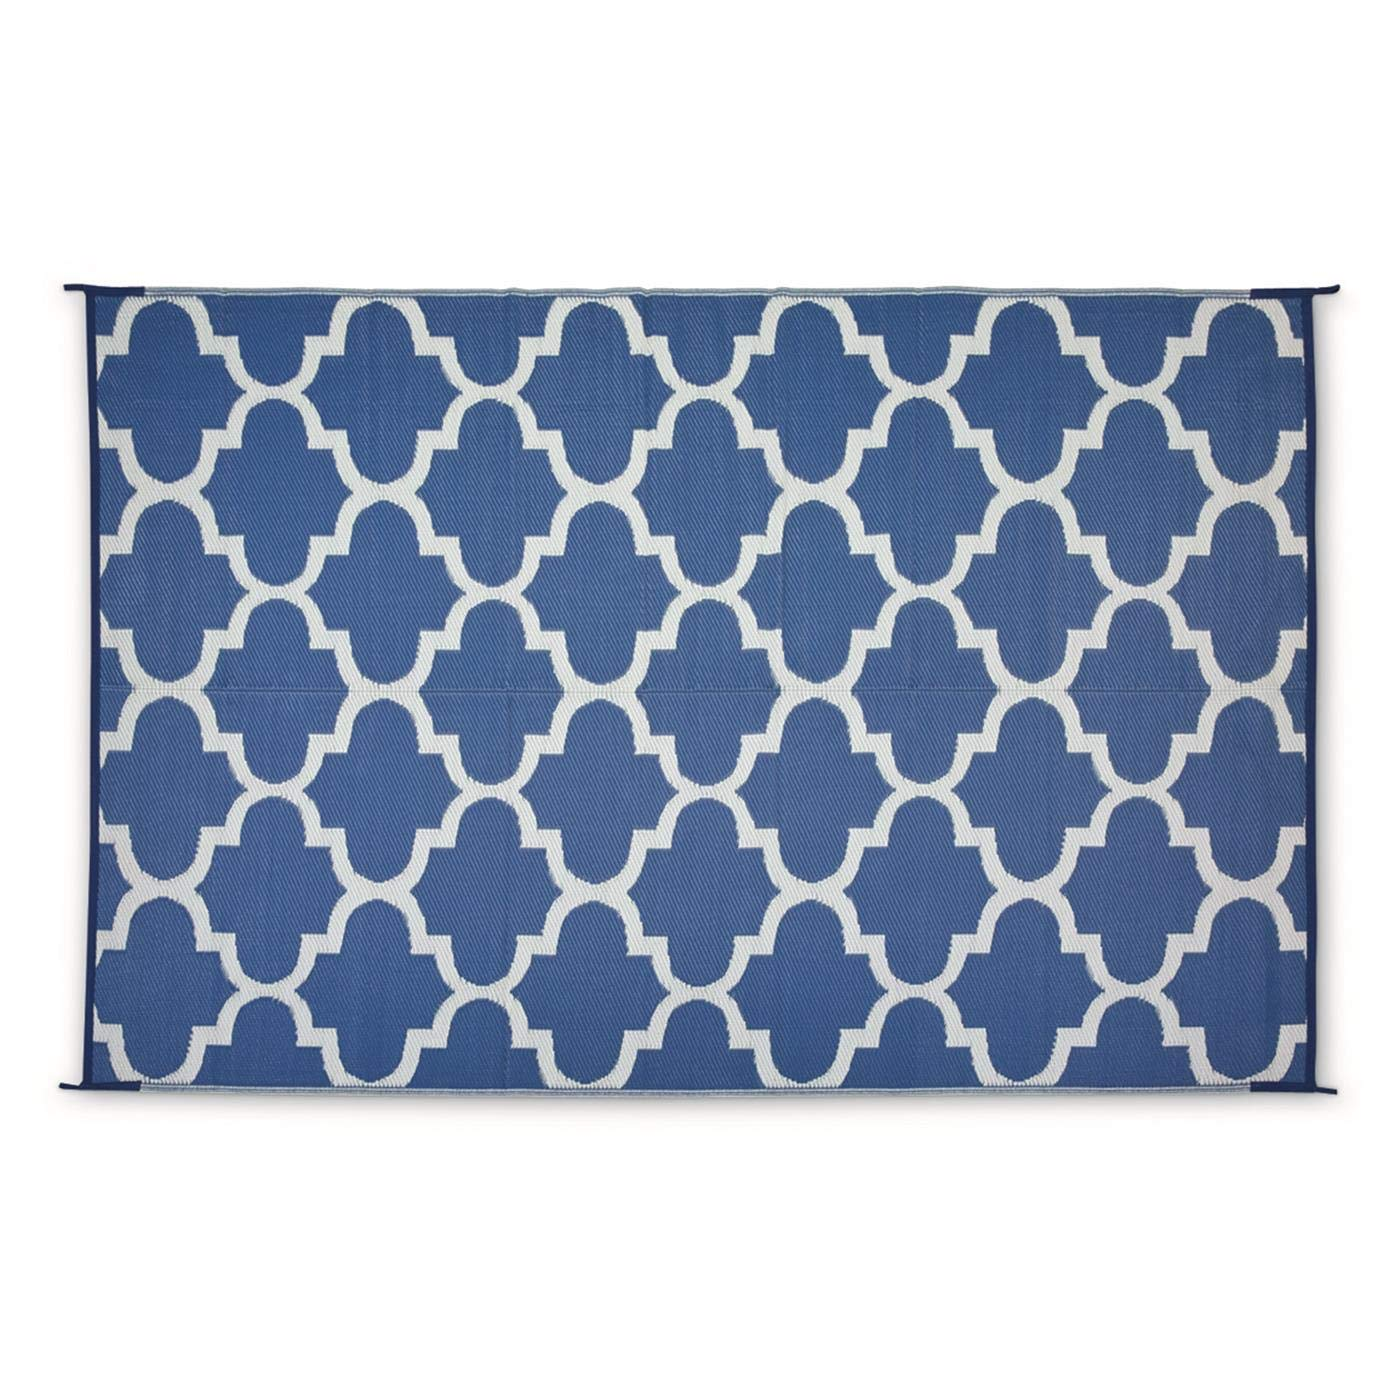 Guide Gear Moroccan Outdoor Rug, Blue/White, 9X6